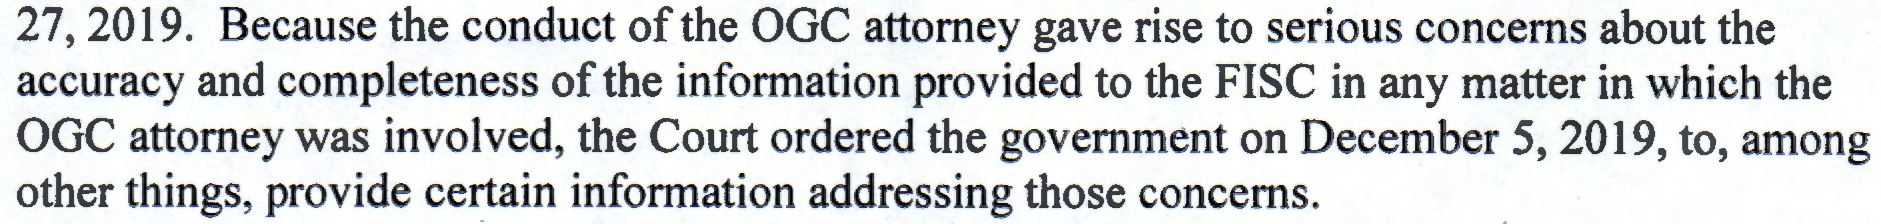 IN RE ACCURACY CONCERNS REGARDING FBI MATTERS SUBMITTED TO THE FISC Docket No. Misc. 19-02